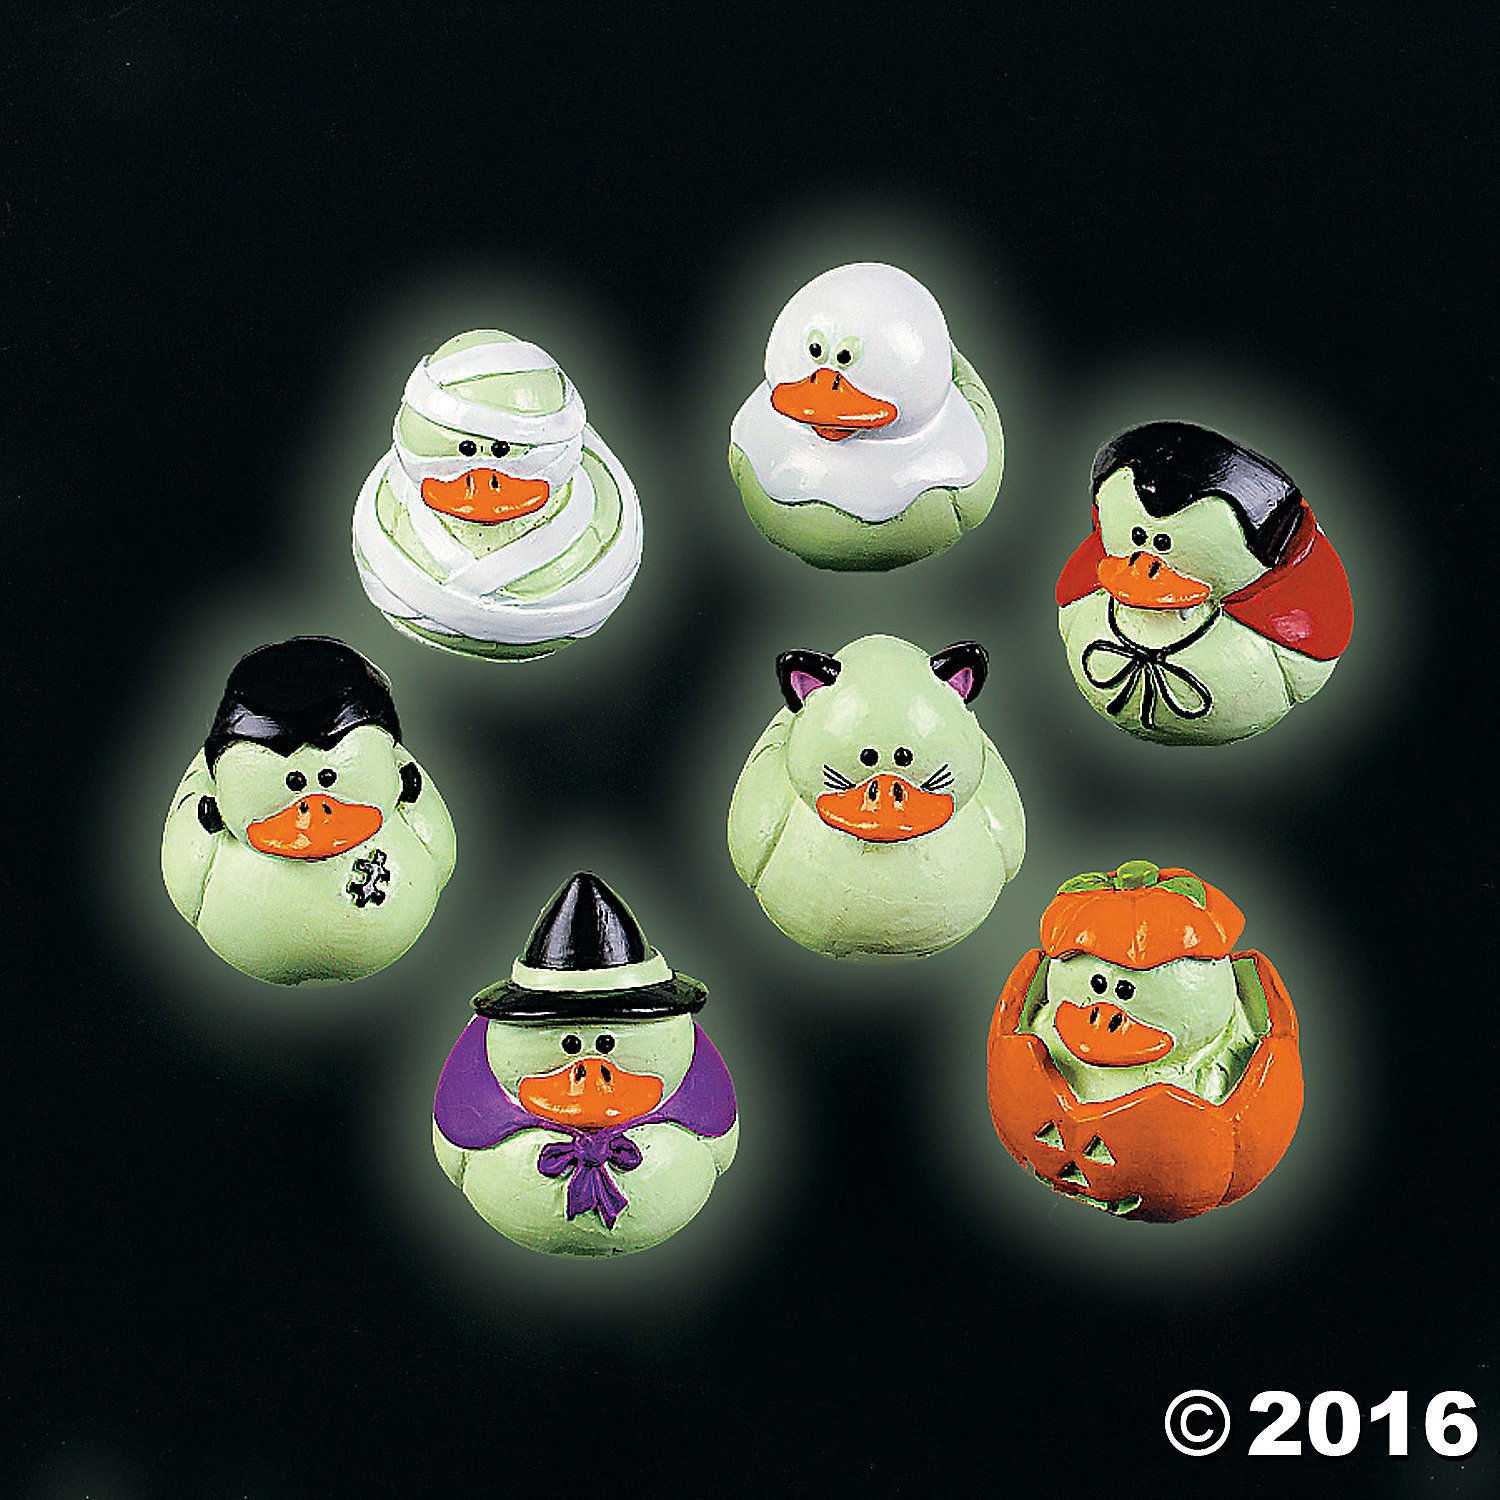 Mini Glow-in-the-dark Halloween Rubber Ducks